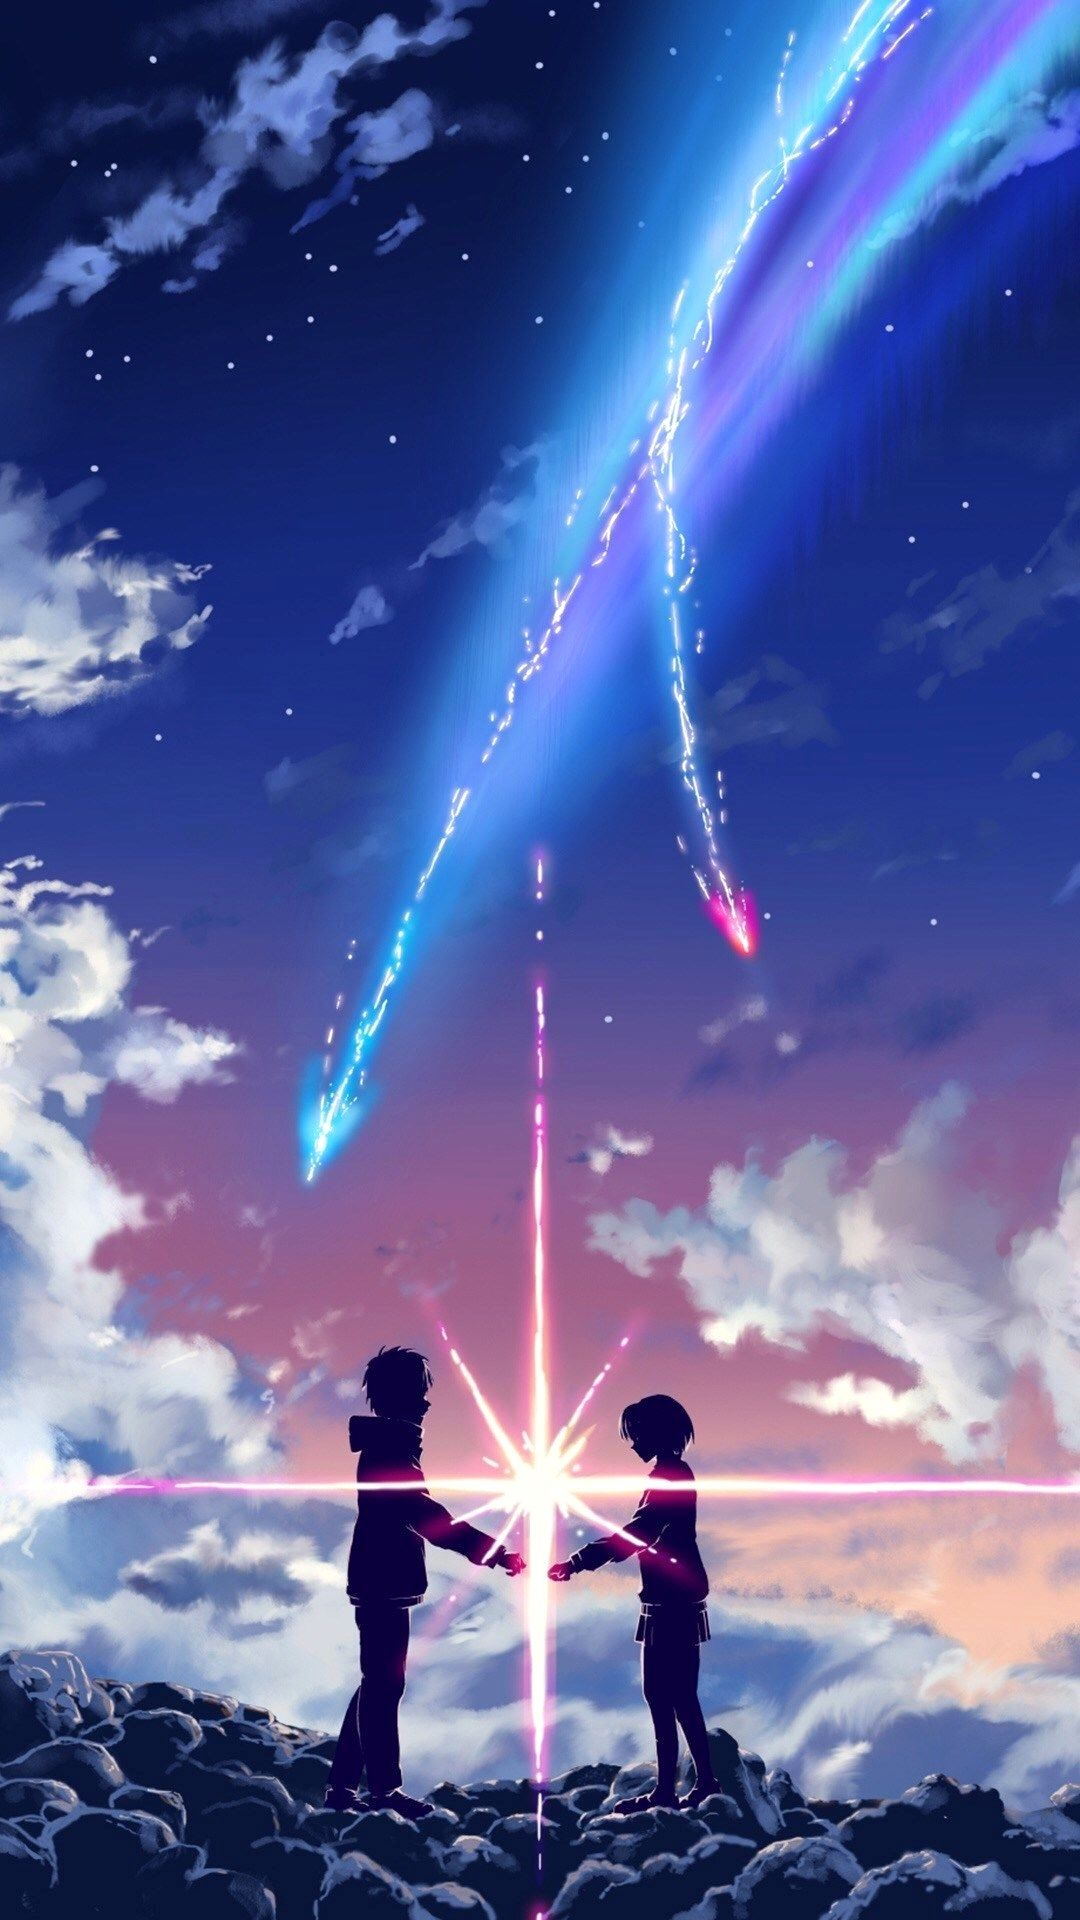 Sao Wallpaper 4k Iphone Gallery Anime Backgrounds Wallpapers Anime Scenery Anime Wallpaper Iphone